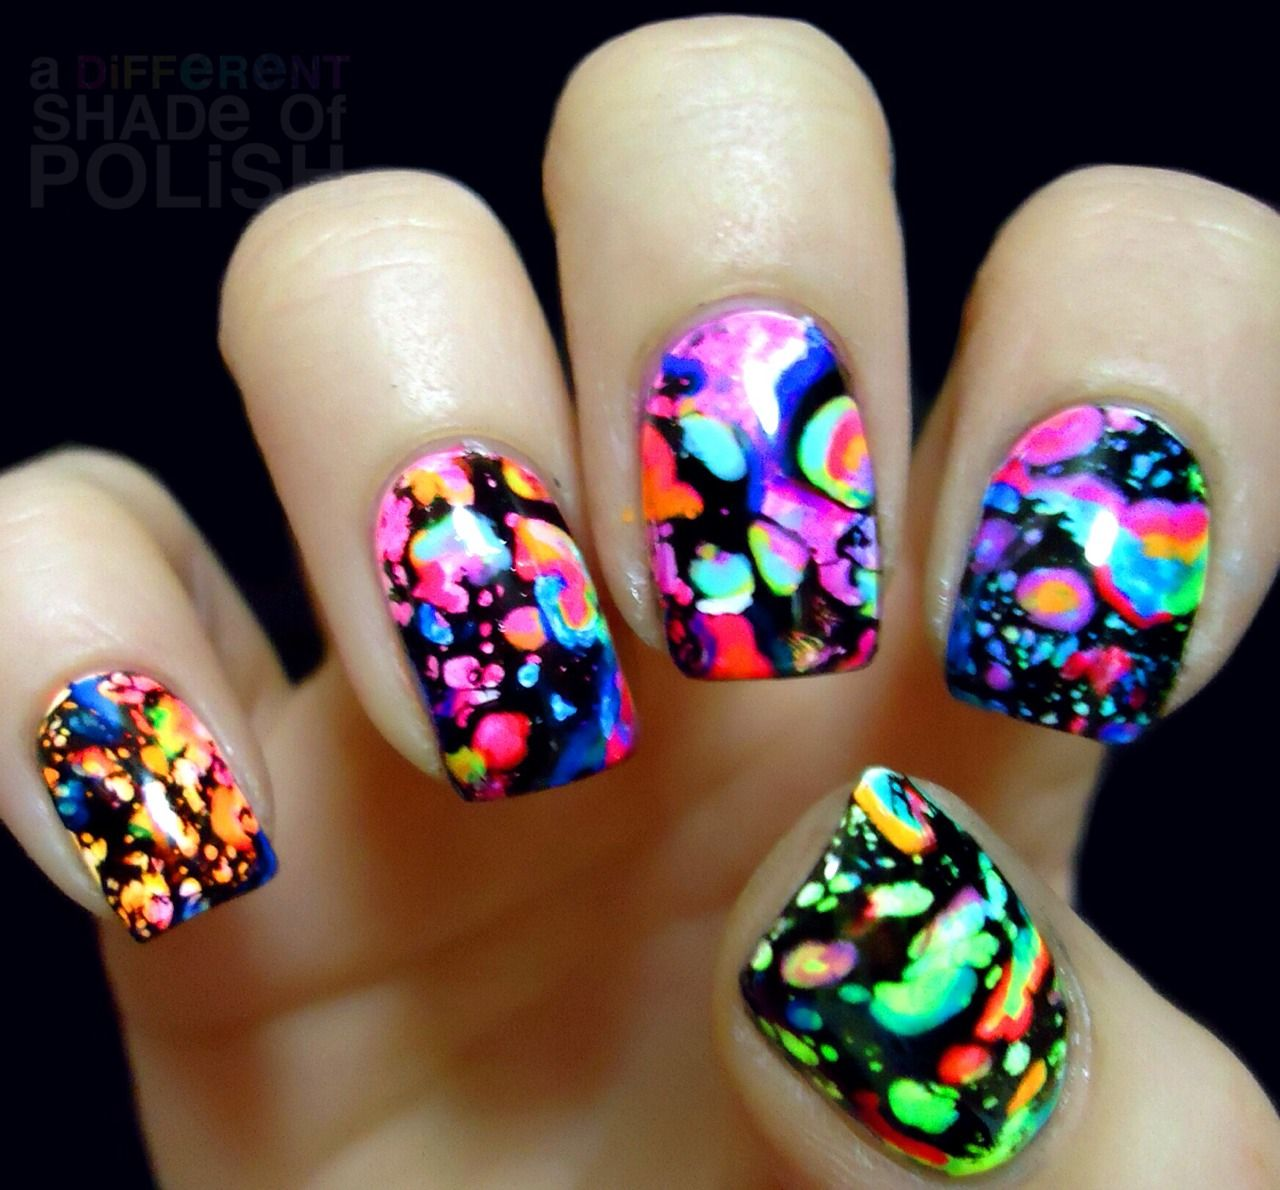 Second addition to my acrylic paint mani. I added some accents to ...